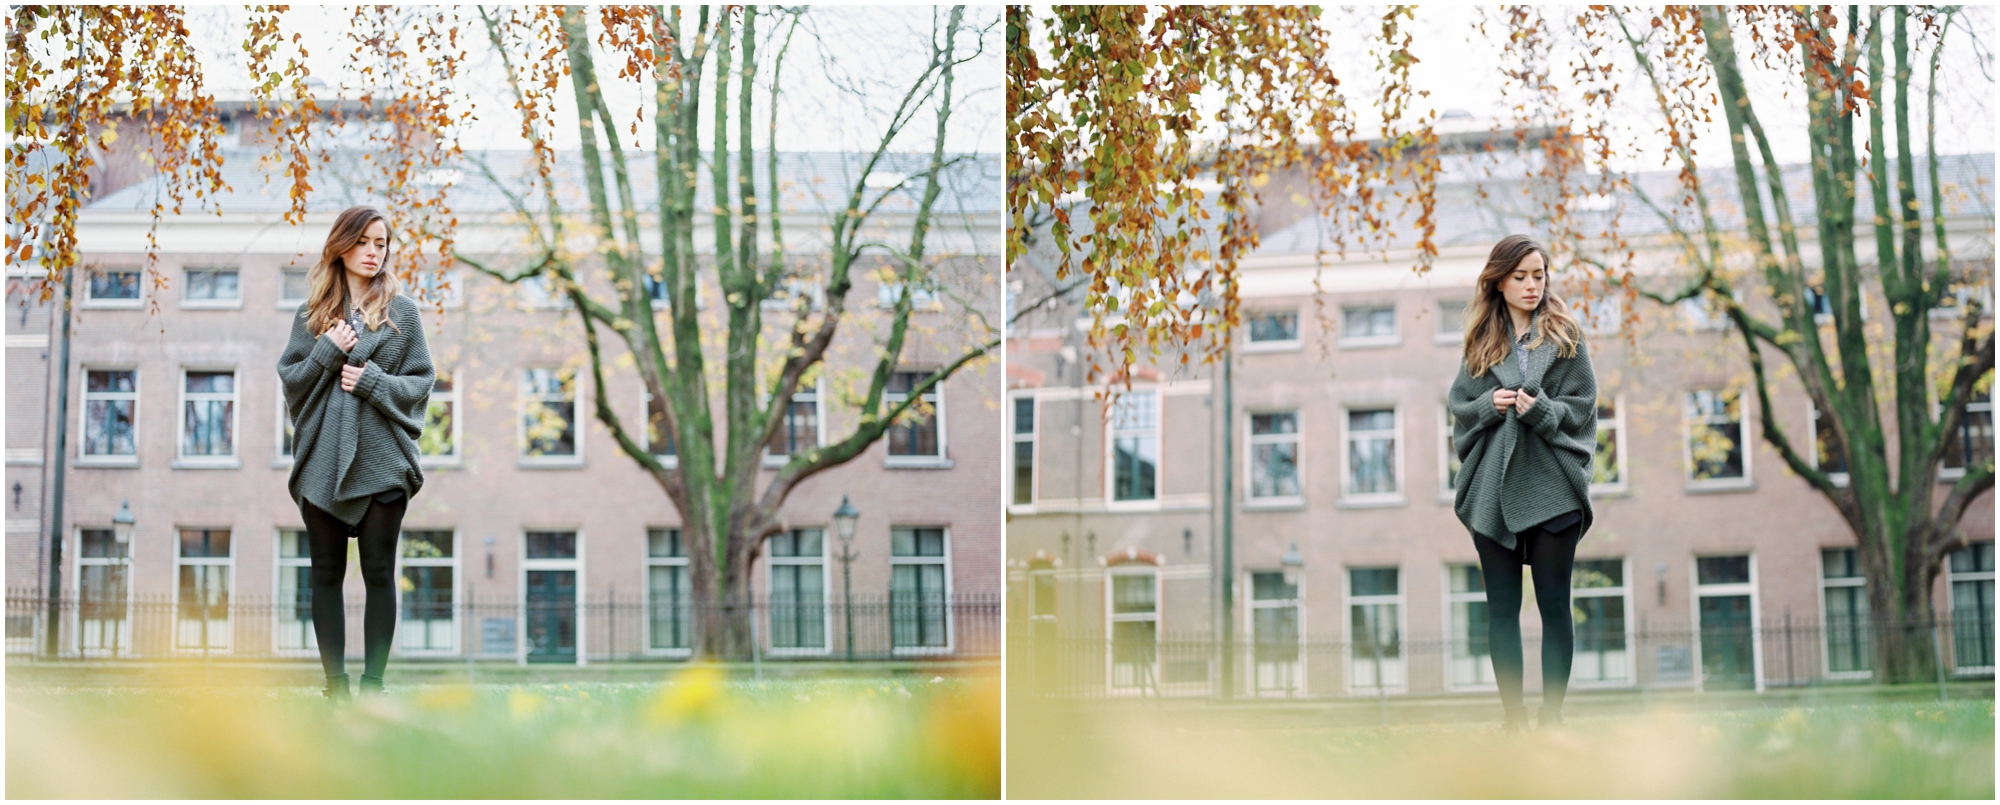 film lab, comparison, uk film lab, carmencita, compared, side-by-side, analog, medium format, photography, mamiya, kodak, portra, filmlab, scanning, developing, C41, C-41,